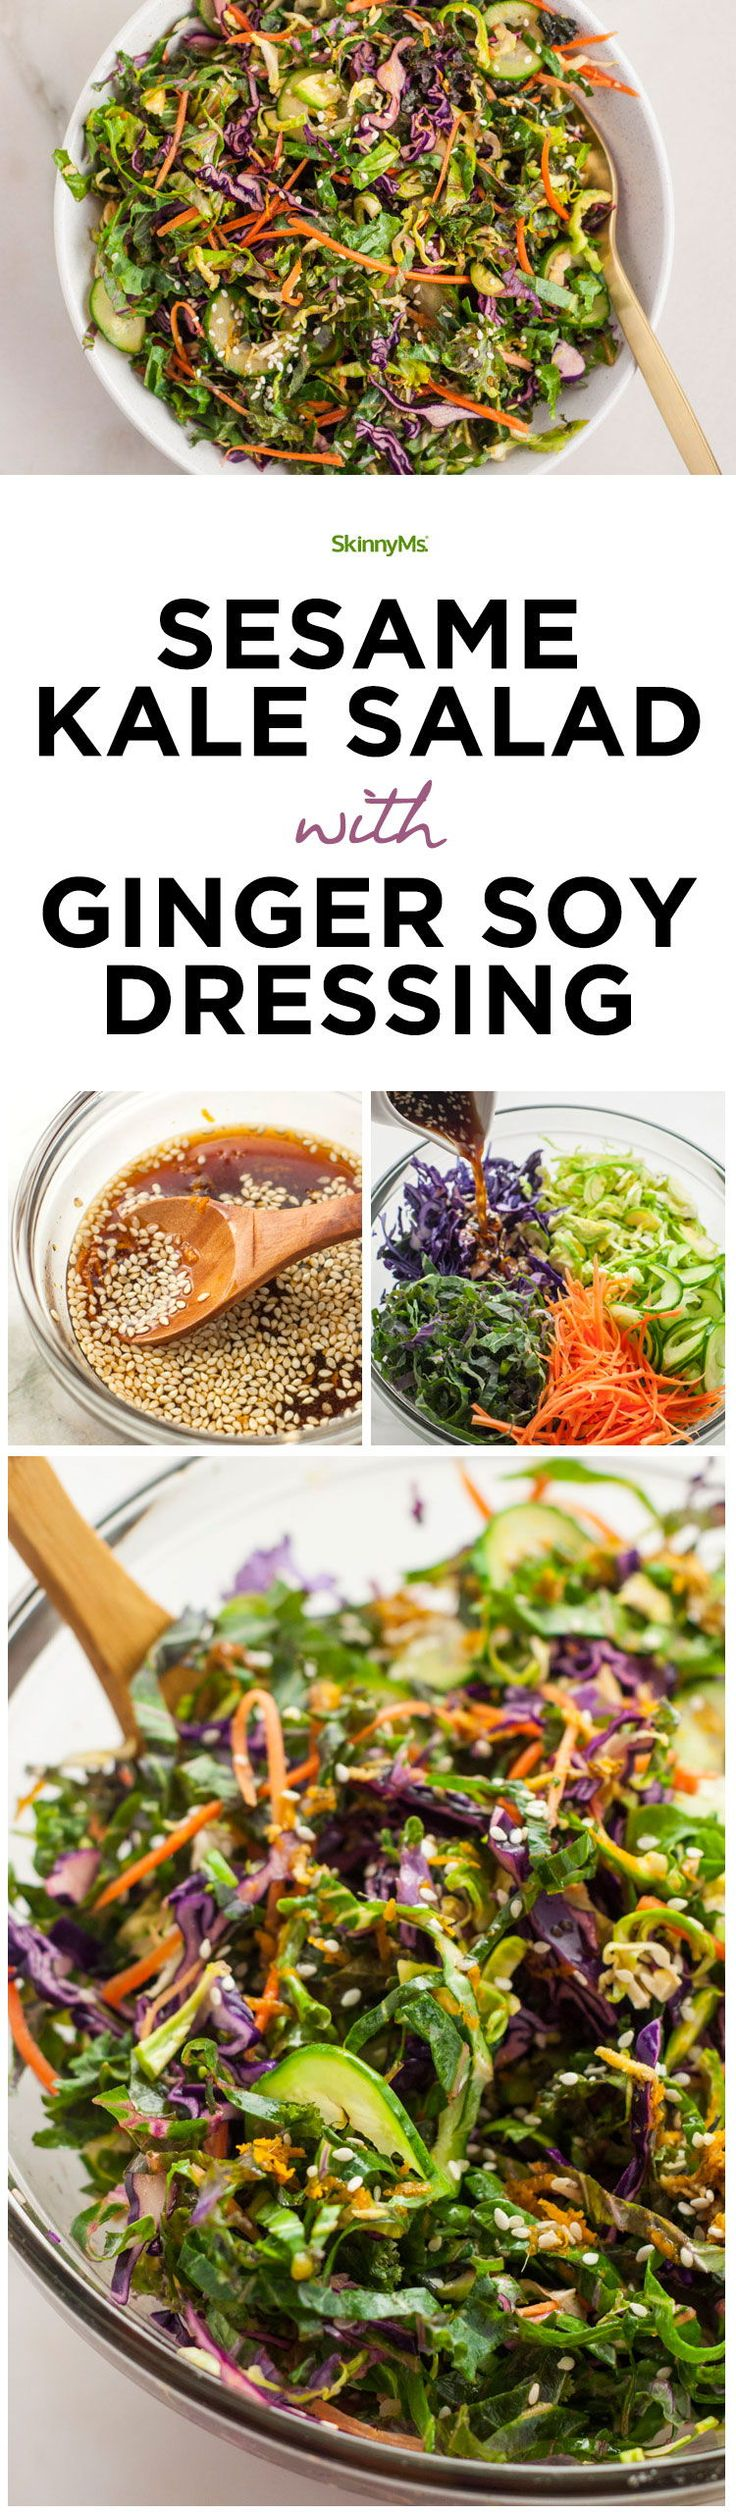 Sesame Kale Salad with Ginger Soy Dressing - Everything from the perfect tanginess to the crispy textures, this salad is a true winner. #salad #cleaneating #vegetarian #recipe